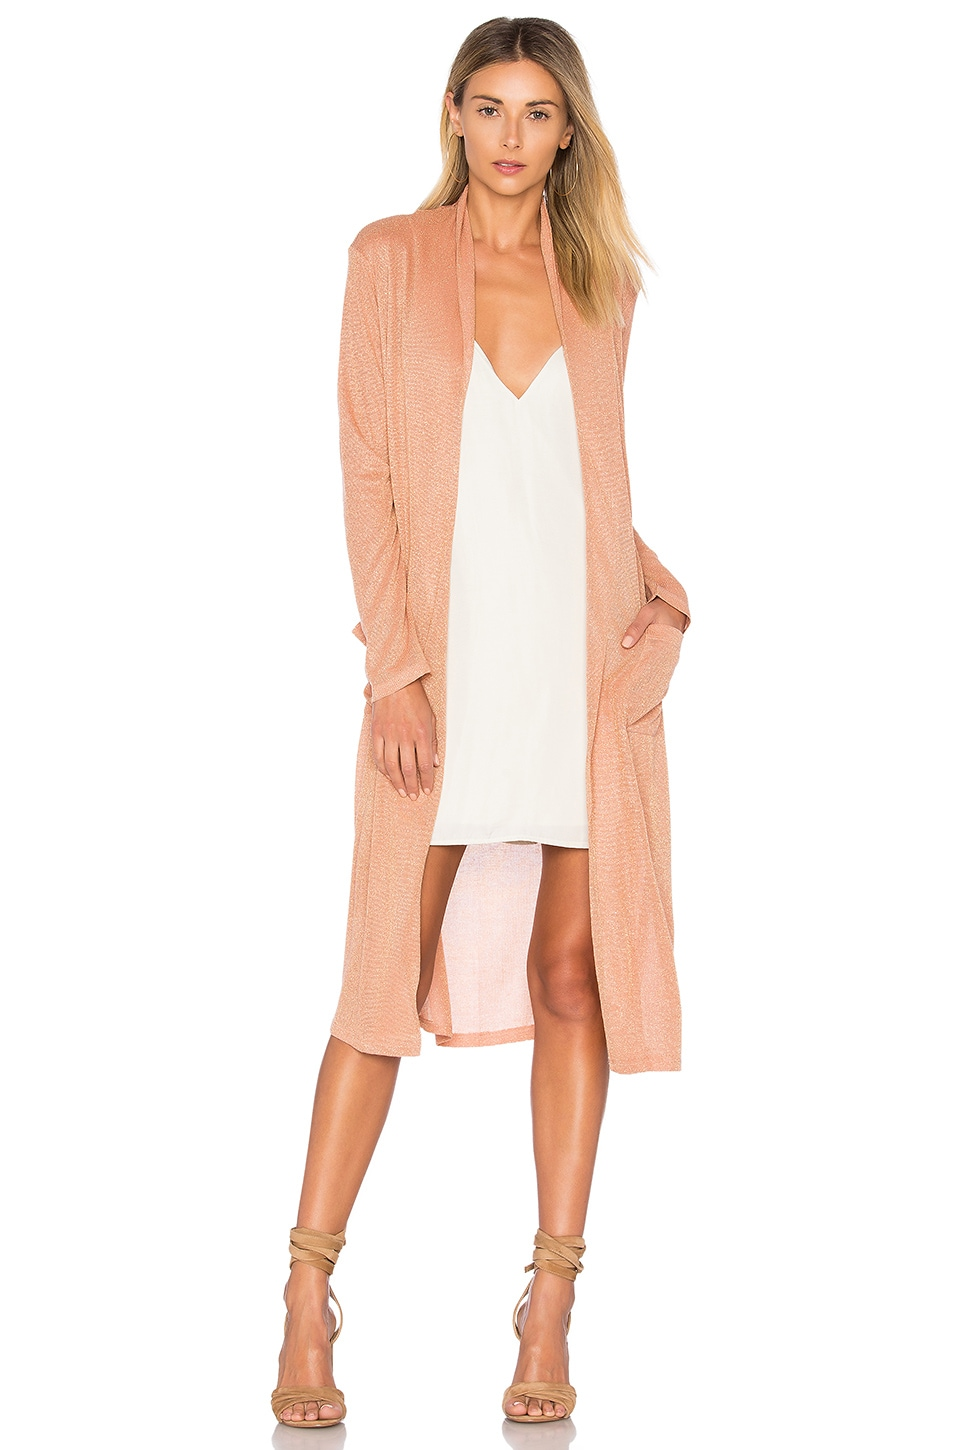 Privacy Please x REVOLVE Bristol Jacket in Mauve